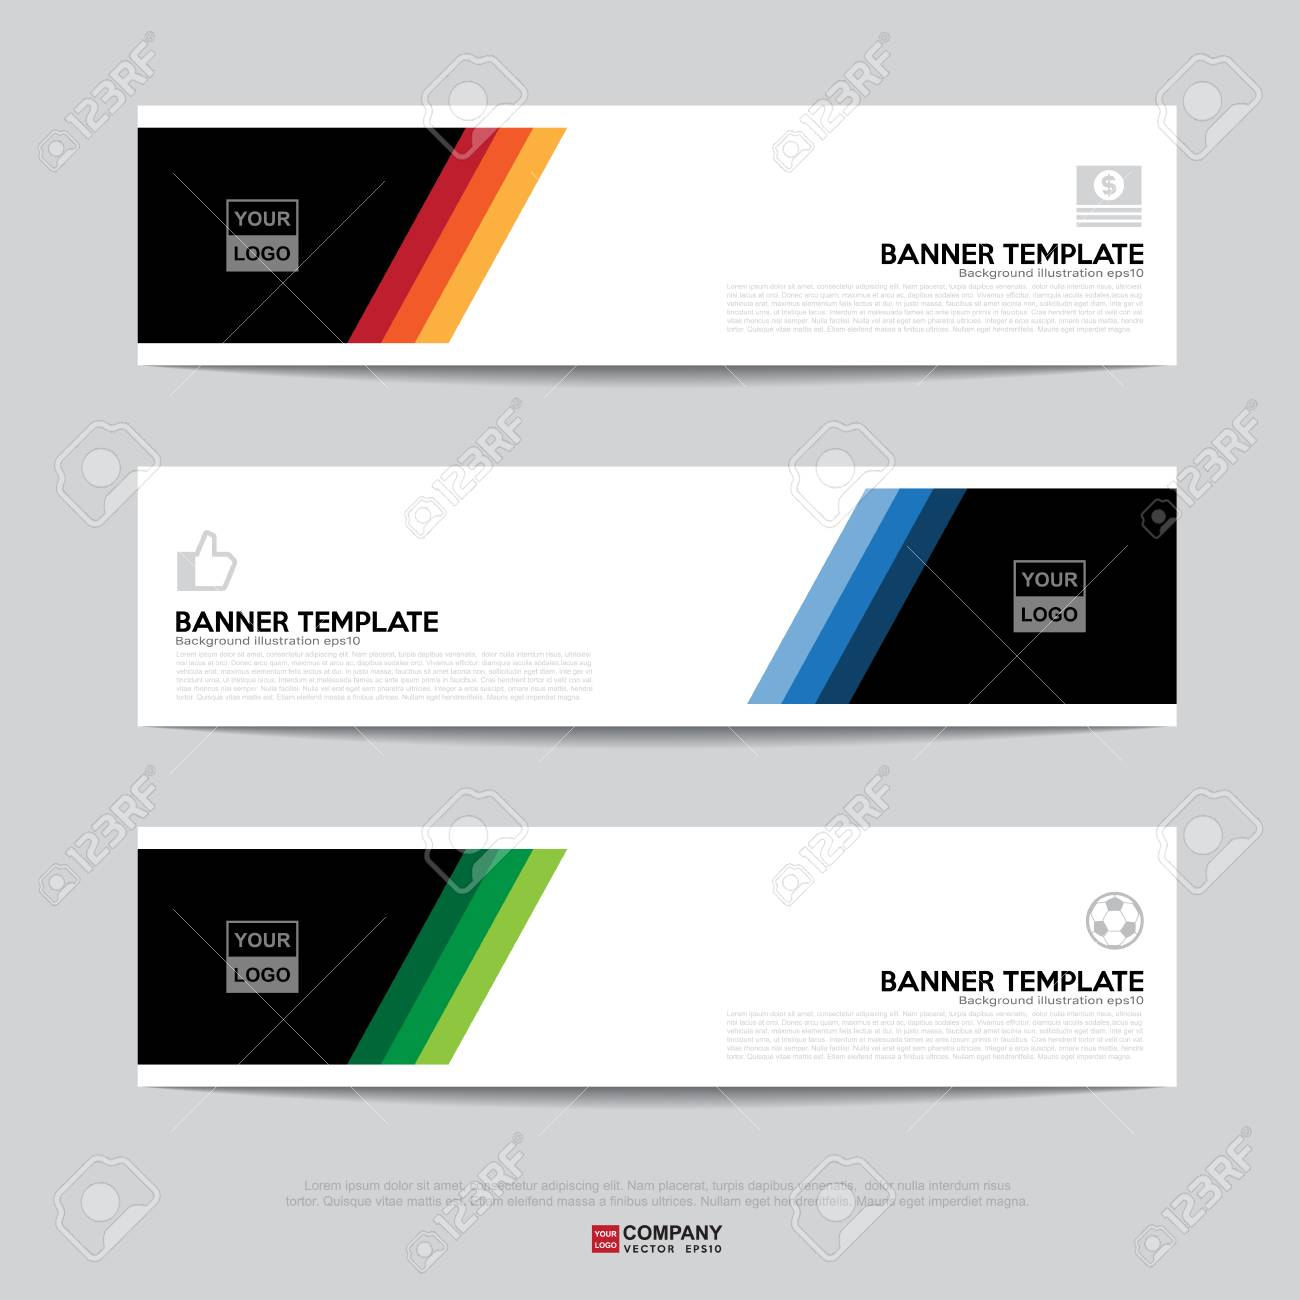 Design of flyers banners brochures and cards templatebanner design of flyers banners brochures and cards templatebanner design for business presentation flashek Choice Image